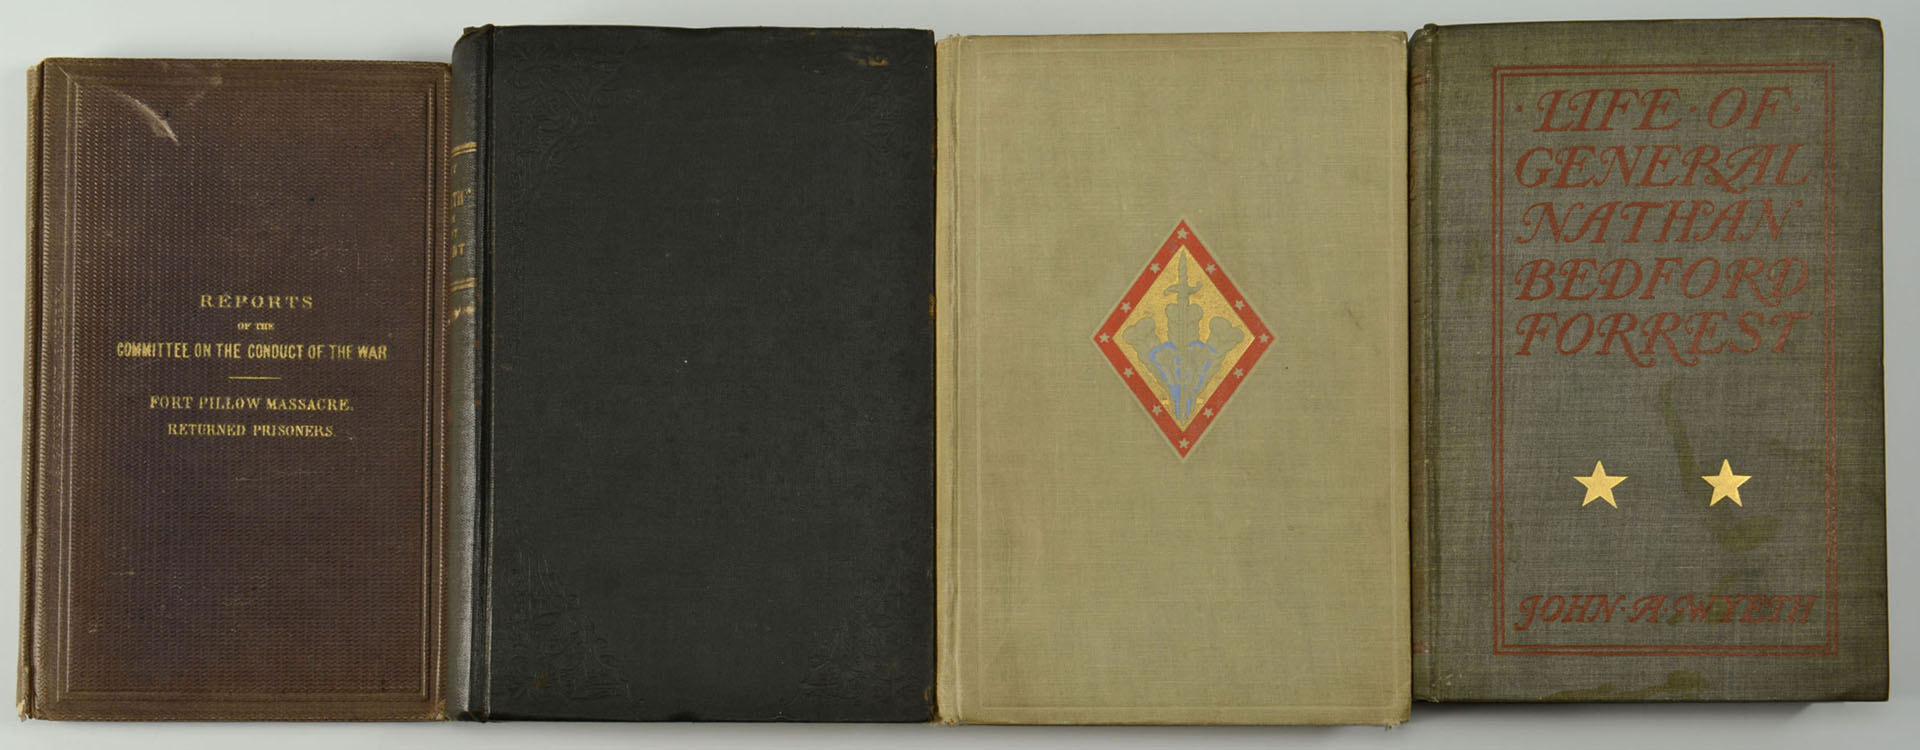 Lot 321: Grouping of 4 Civil War Related Books